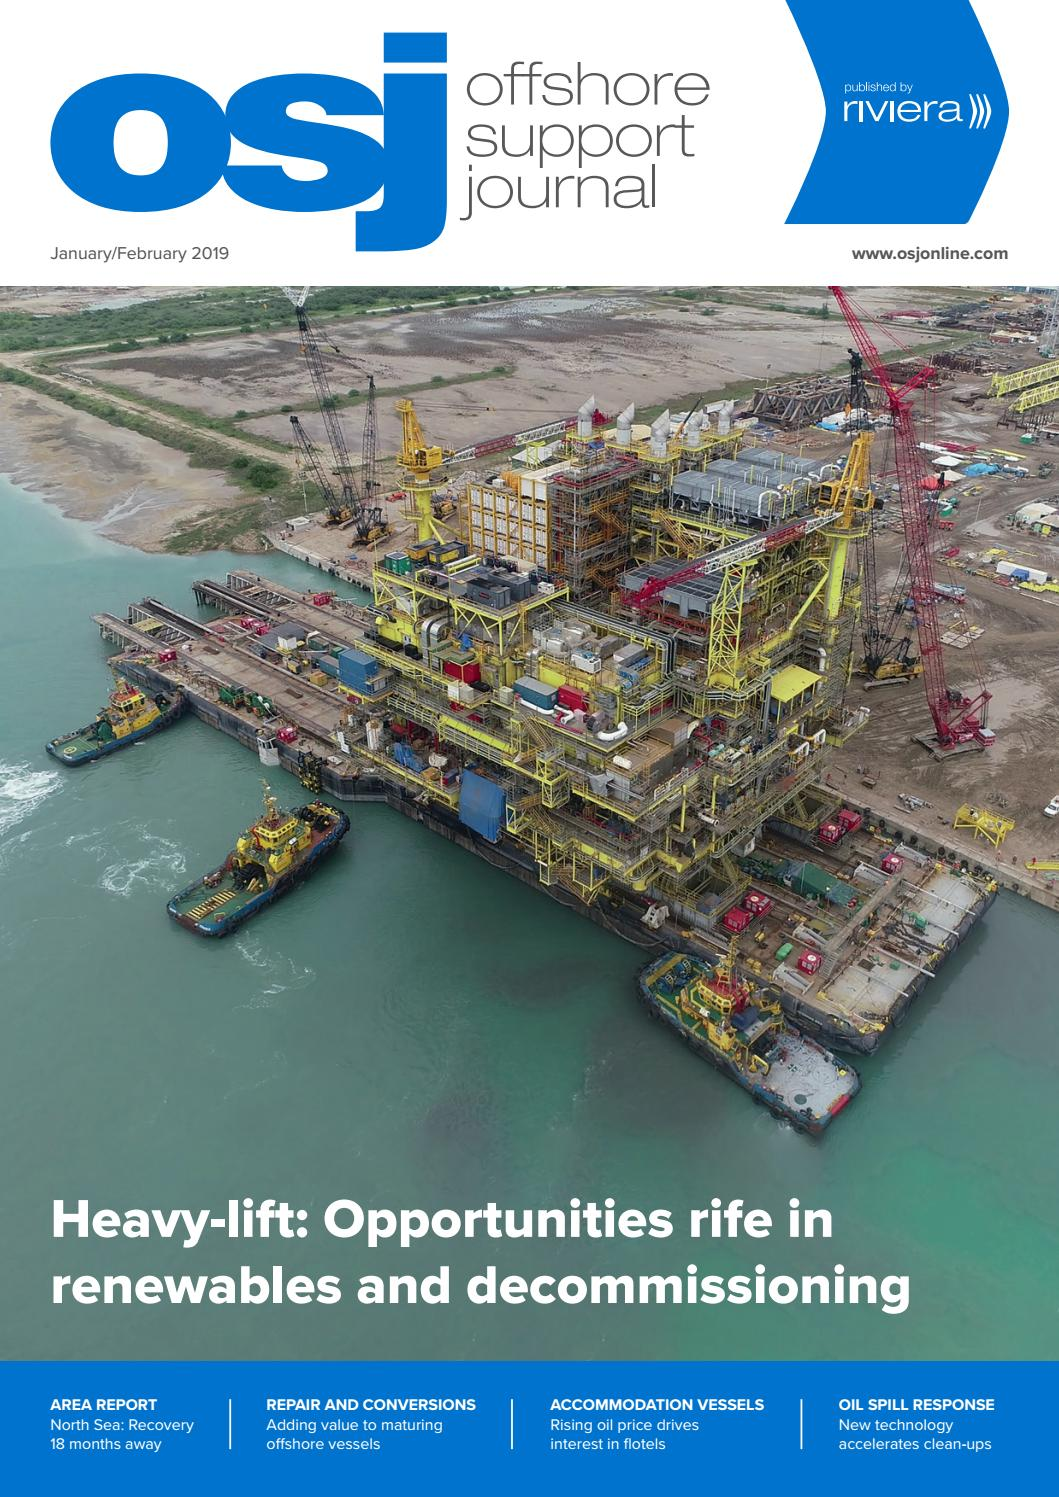 Offshore Support Journal January/February 2019 by